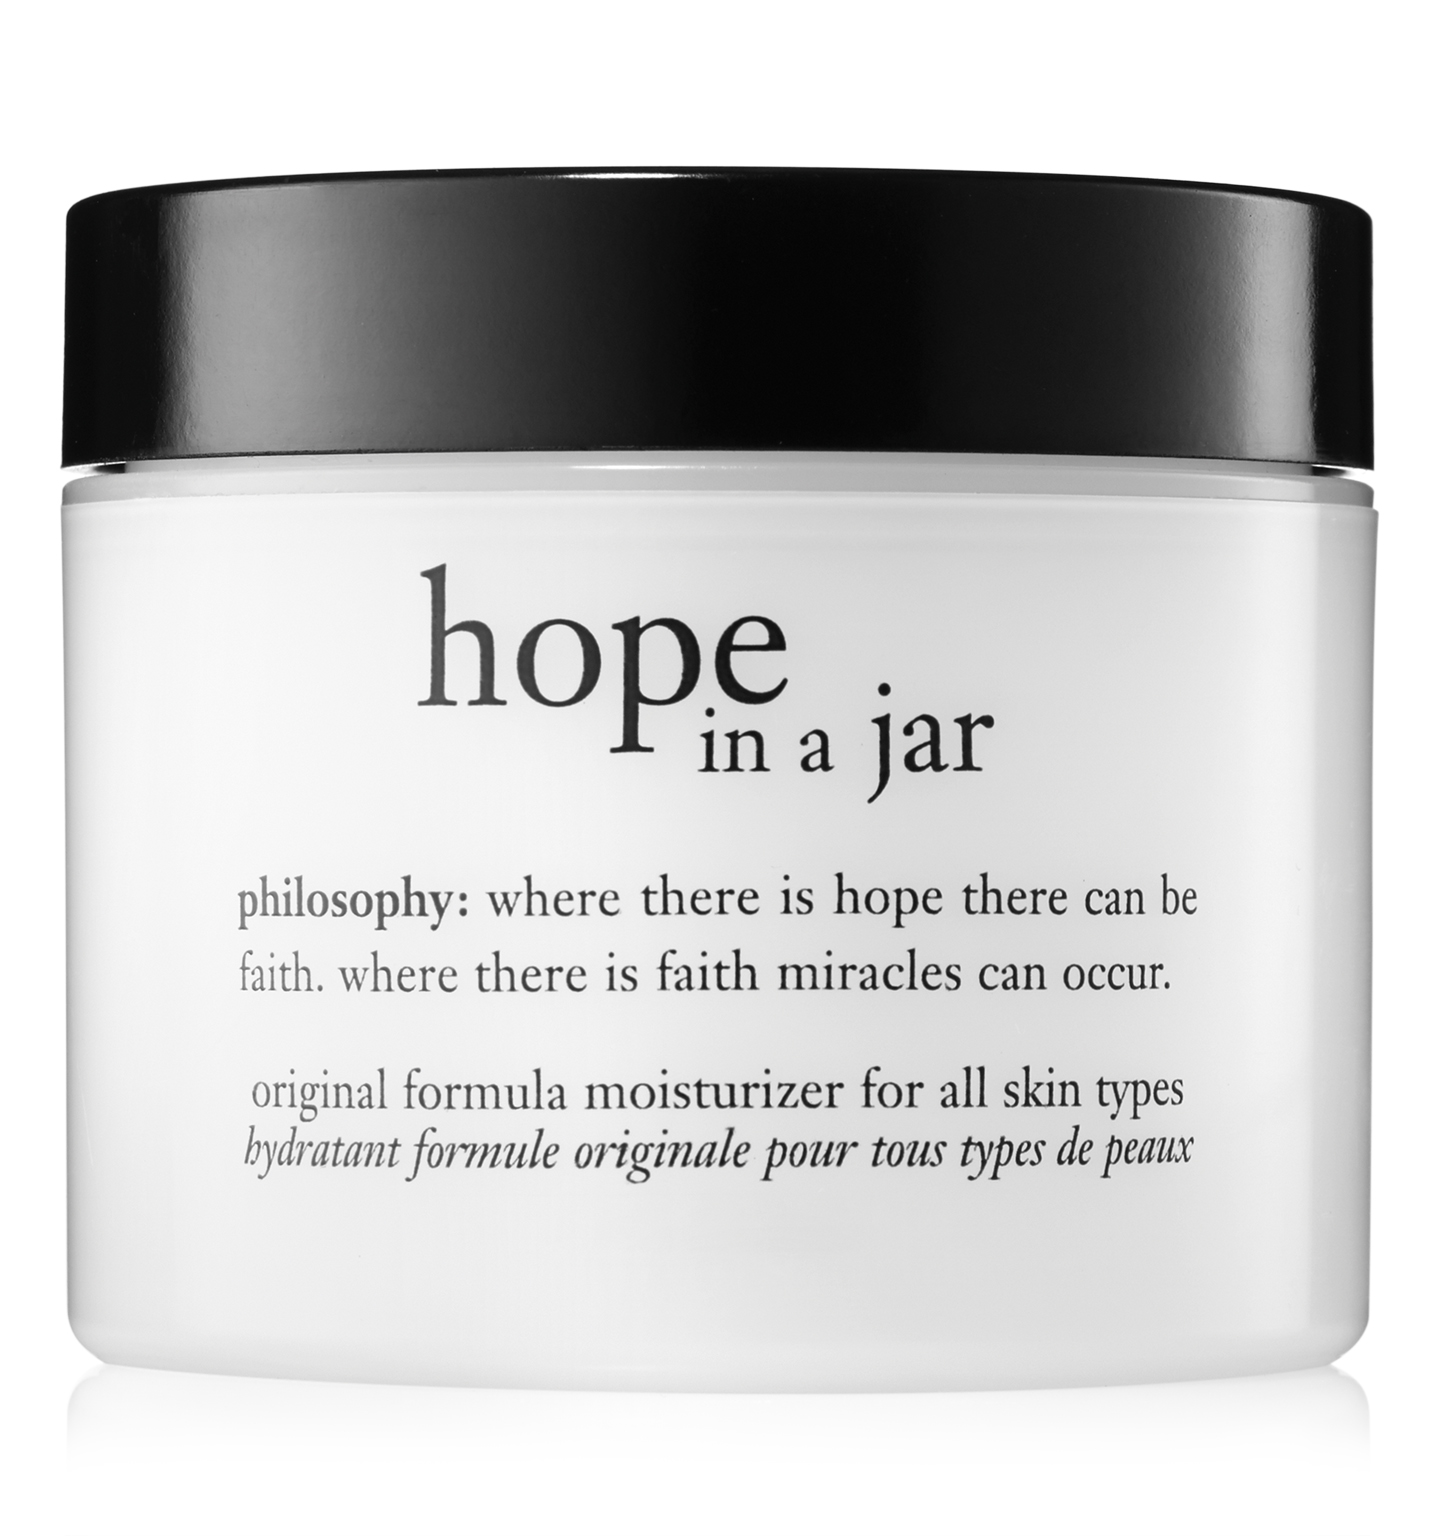 philosophy, hope in a jar moisturizer